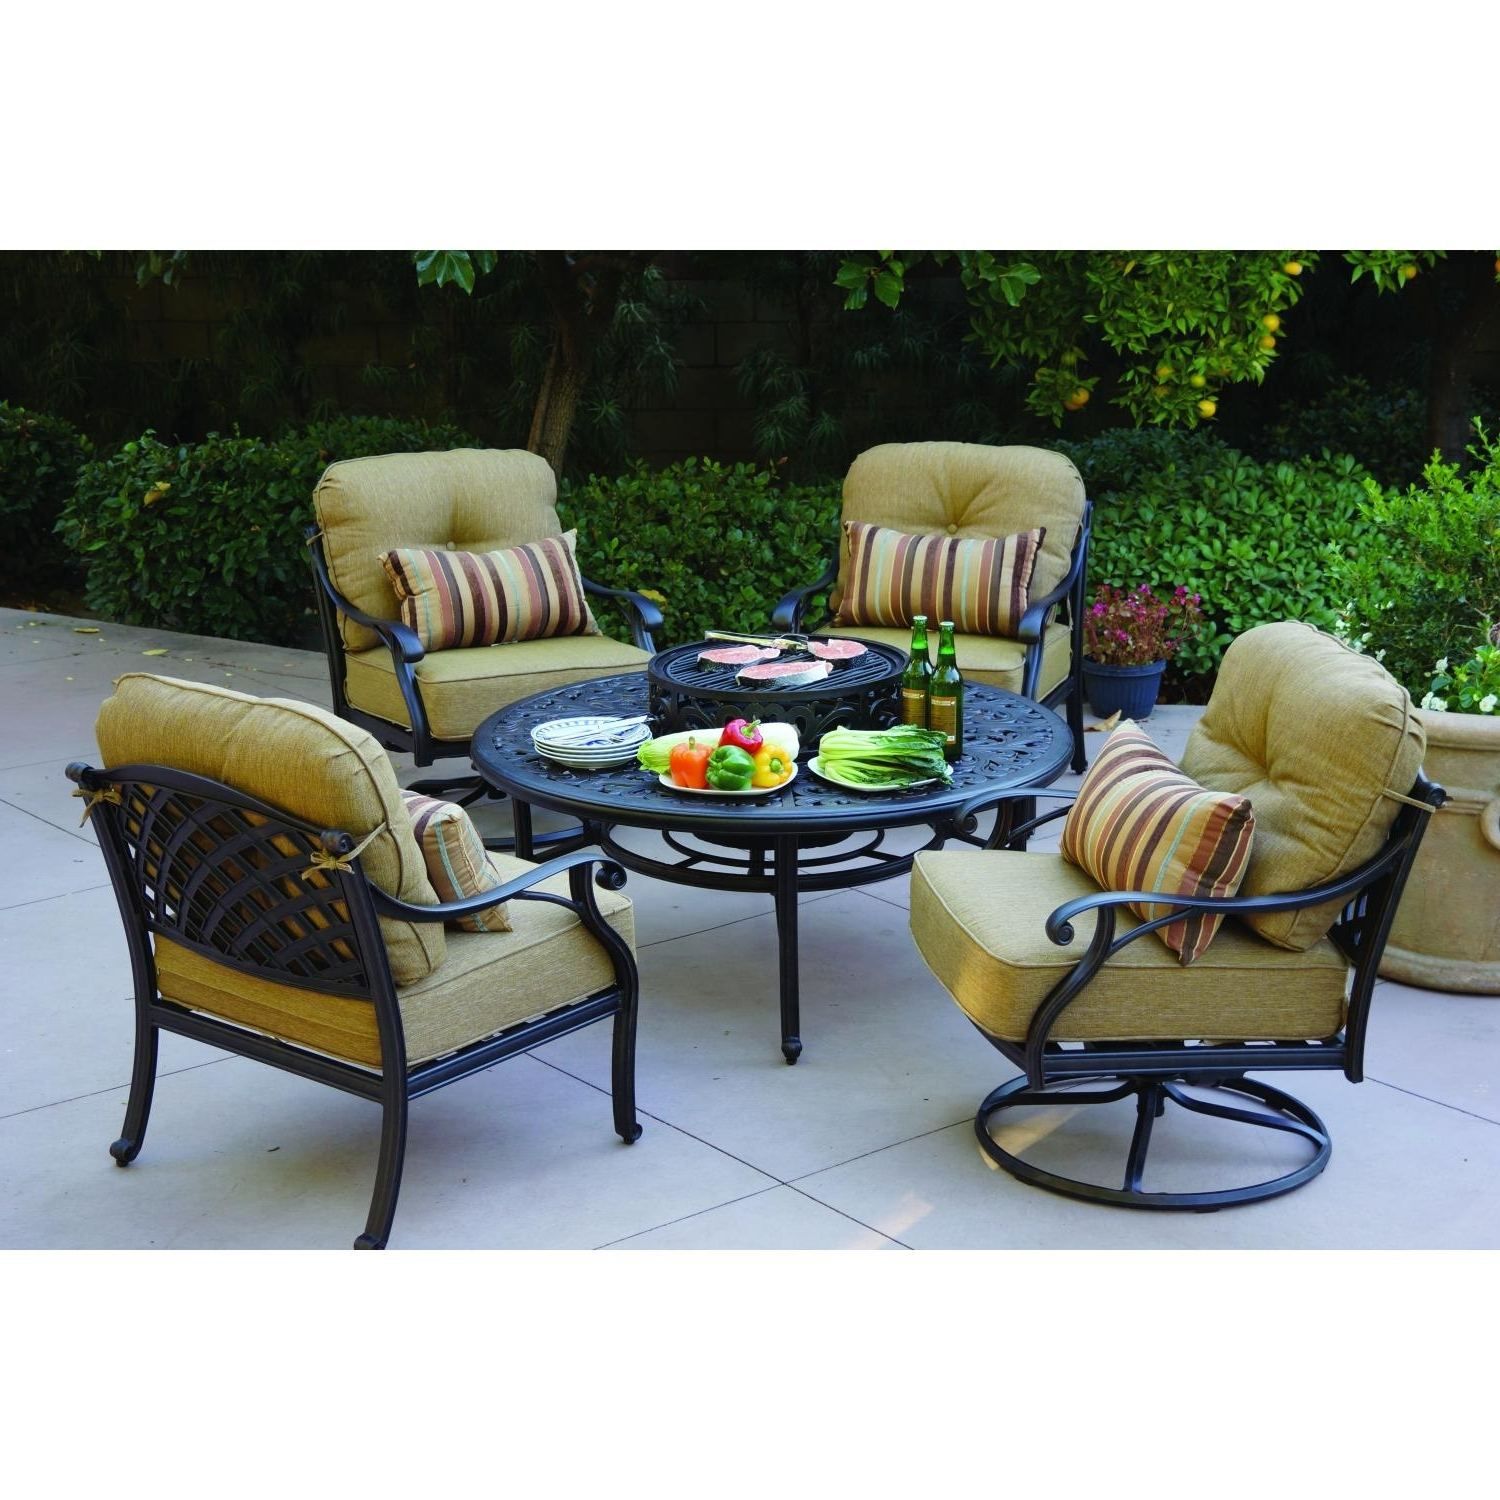 Trendy Round Patio Conversation Sets With Regard To Beautiful Round Propane Fire Pit Table And Chairs Conversation Sets (View 13 of 15)